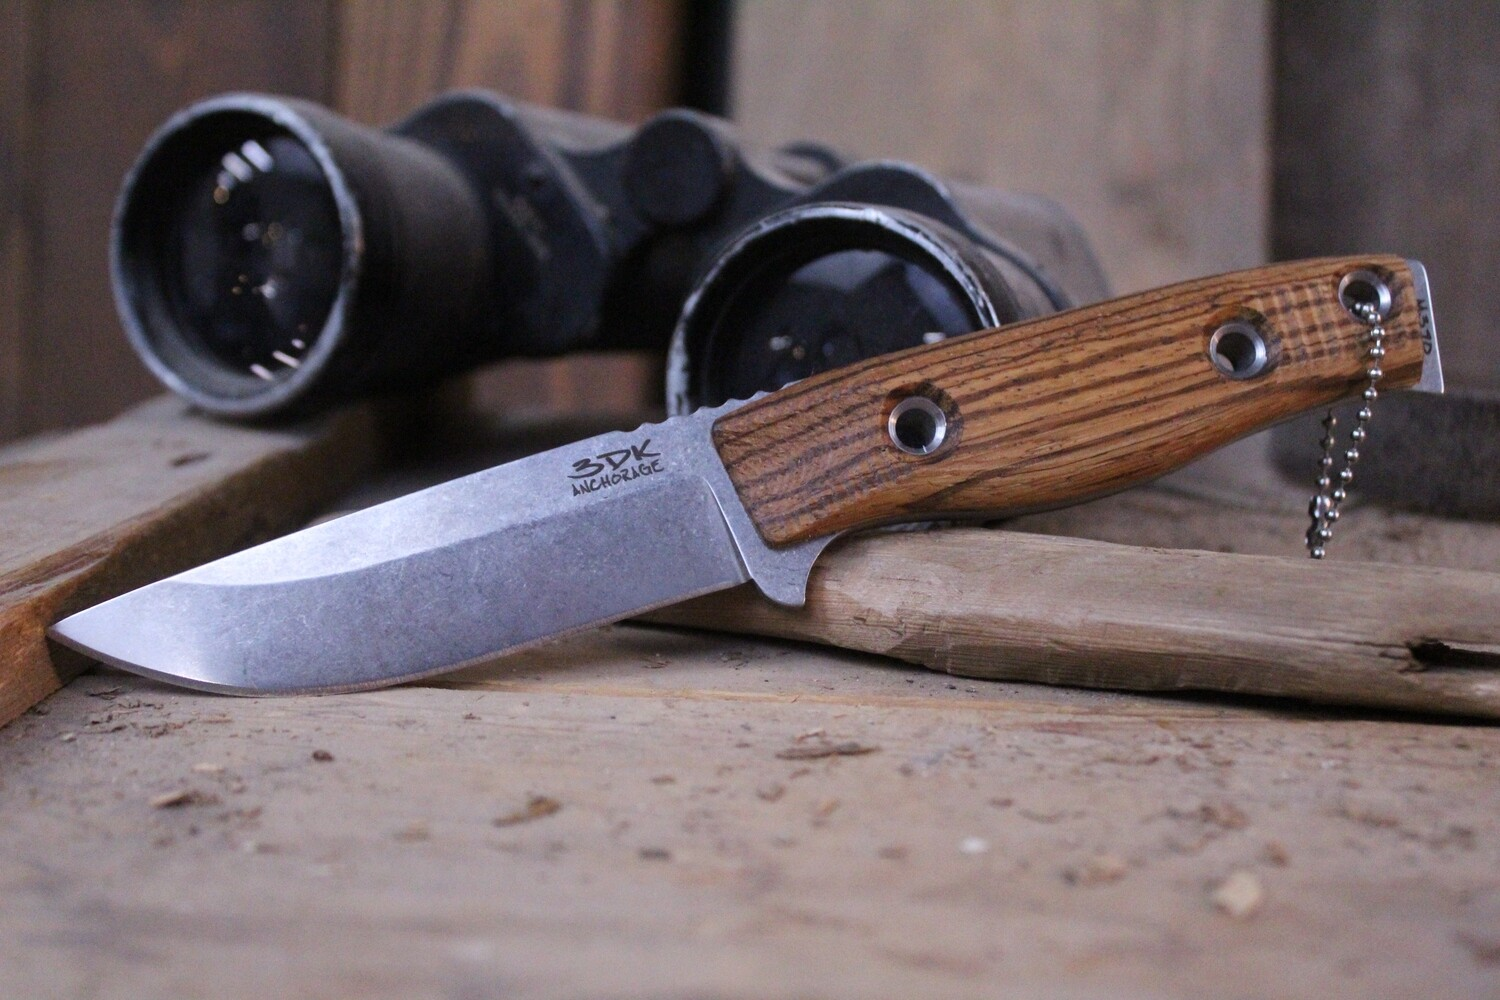 "3DK MAK 4"" Fixed Drop Point, M390 Blade /  Zebra Wood Handle"